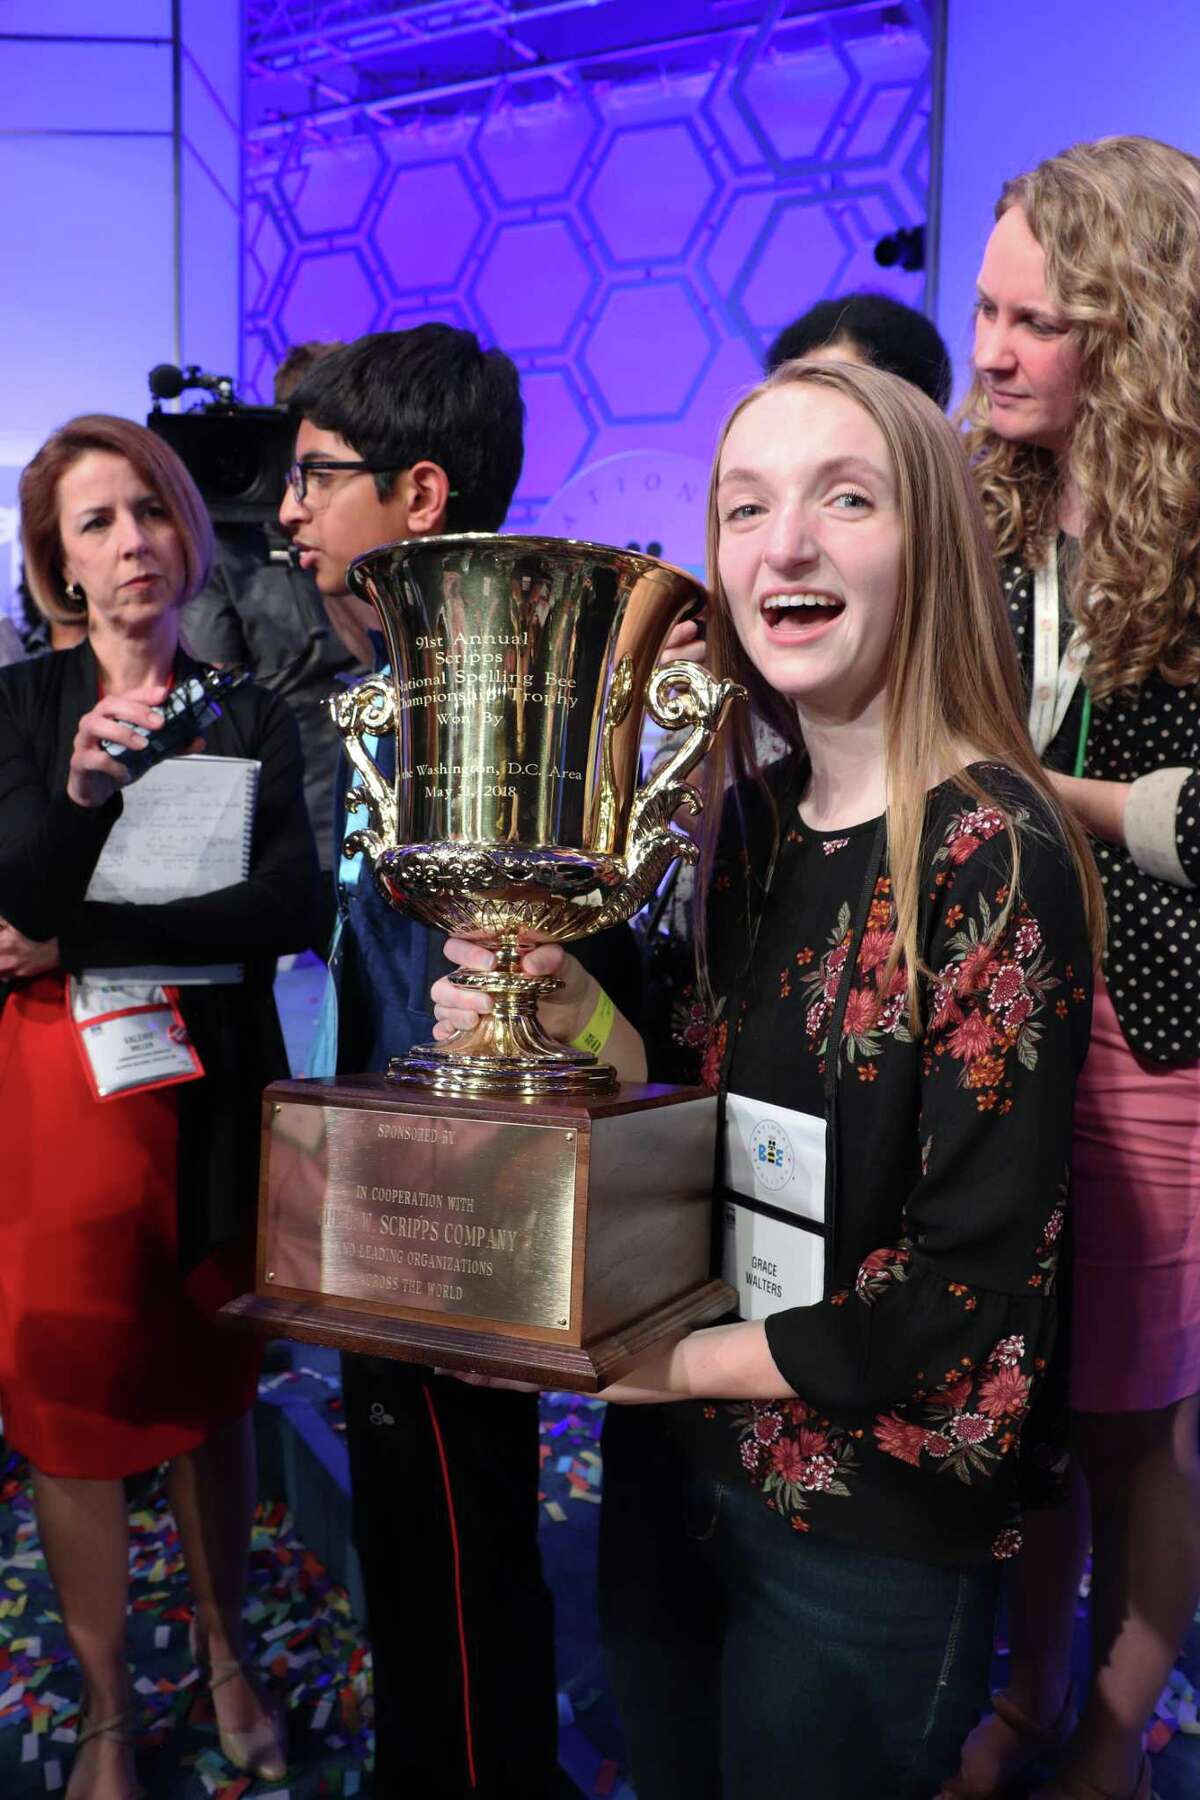 Grace Walters, 16, a Covenant Christian School student, holds the 2018 Scripps National Spelling Bee trophy while her spelling student, Karthik Nemmani, does interviews after winning the 2018 Scripps National Spelling Bee on May 31. Walters has coached Nemmani since September in preparation for the contest.